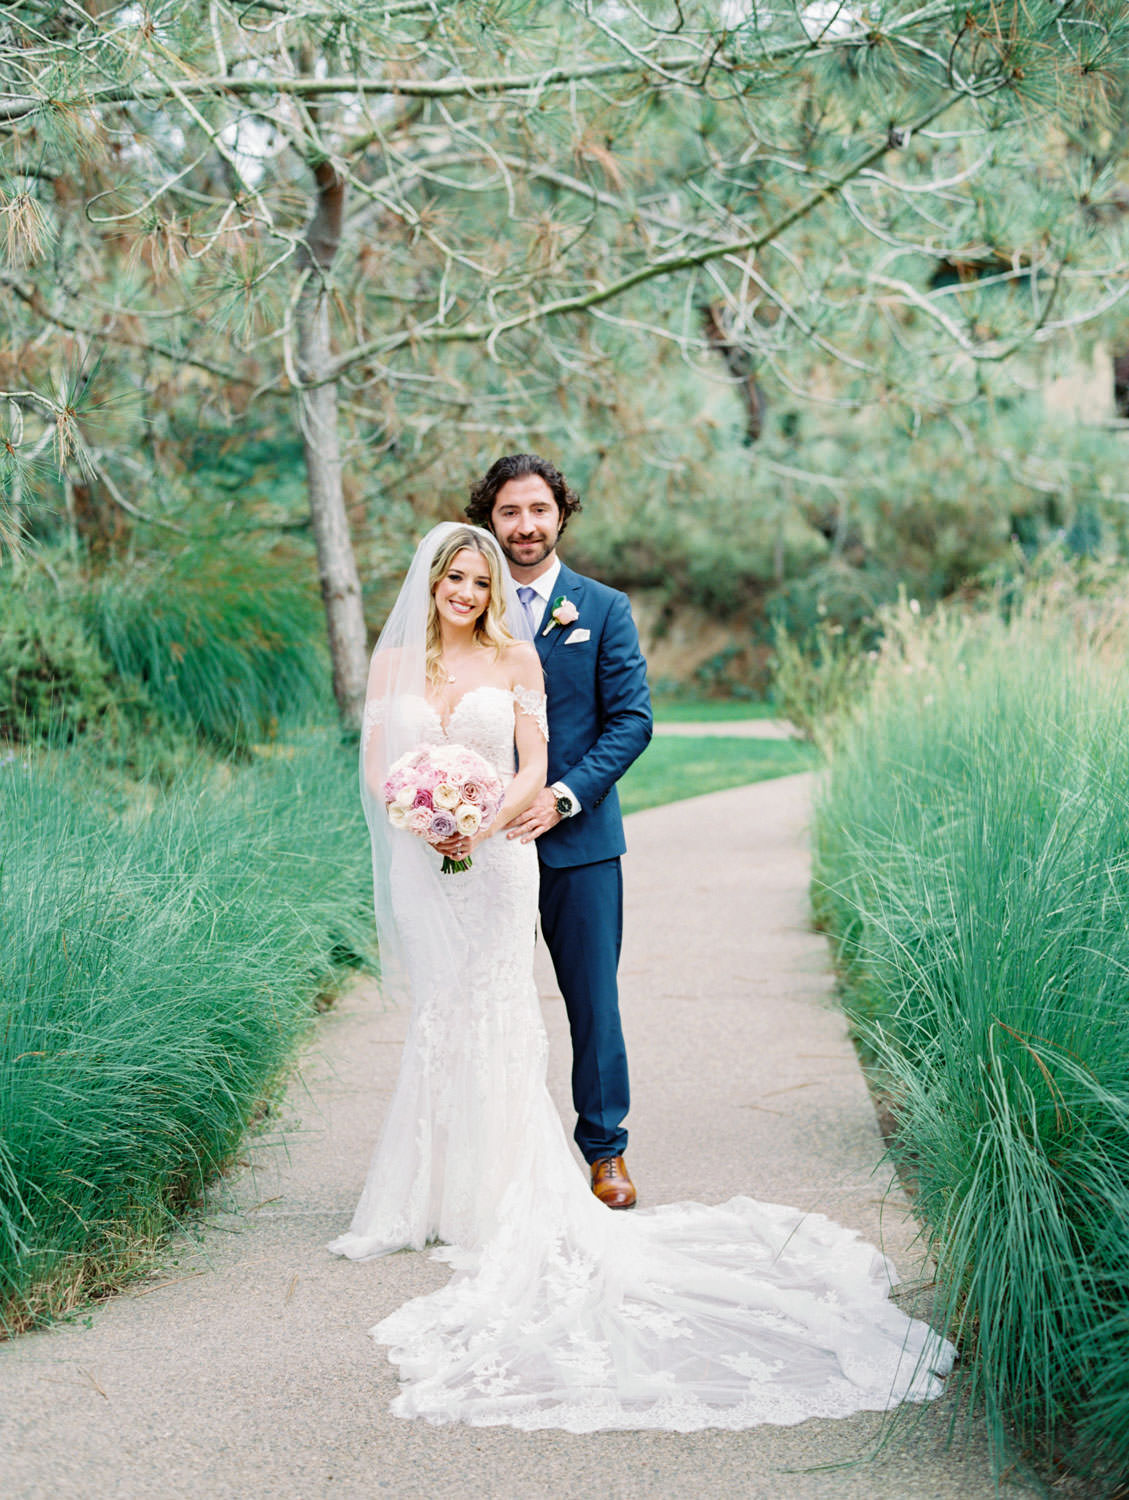 Bride in Pronovias off shoulder lace gown and long train posing with groom in navy suit and rose boutonniere, Lodge at Torrey Pines wedding, film photography by Cavin Elizabeth Photography